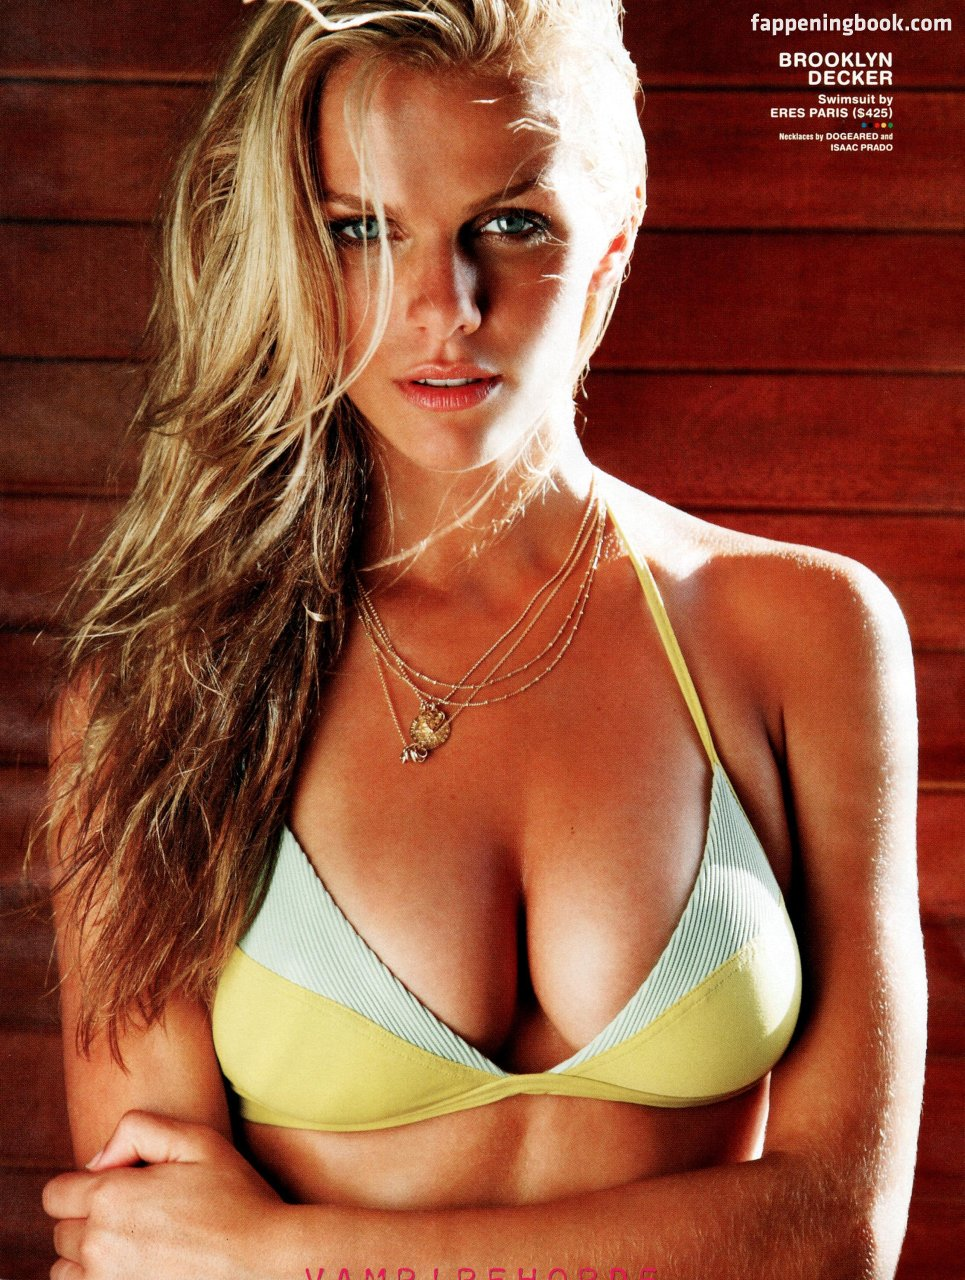 Brooklyn Decker Nude, Fappening, Sexy Photos, Uncensored